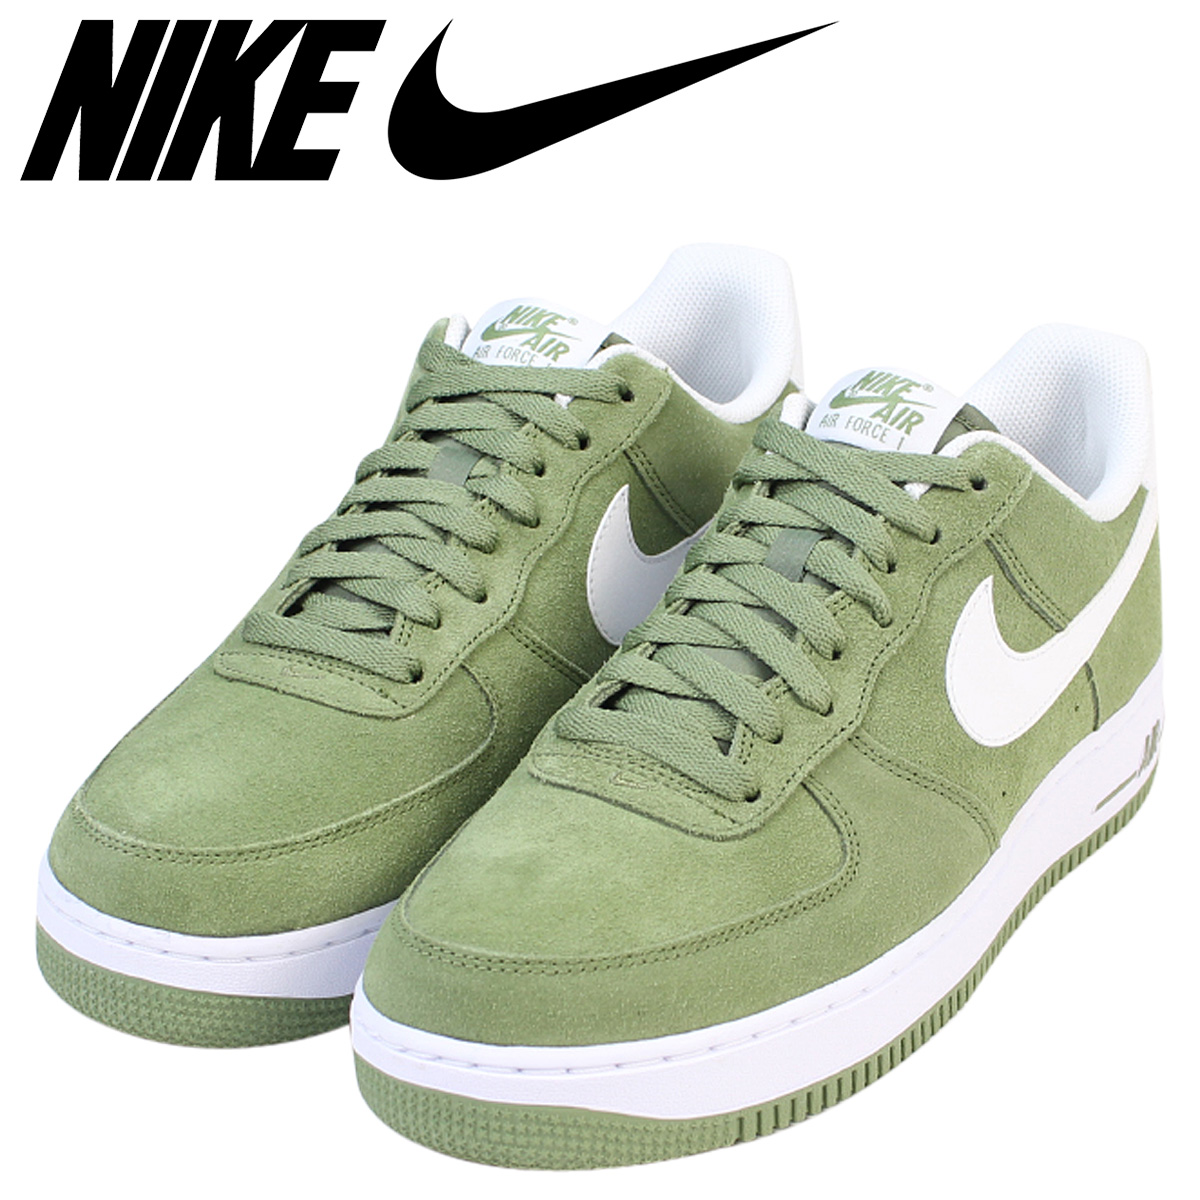 Nike Air Force 1 07 Lv8 shoes green | WeAre Shop